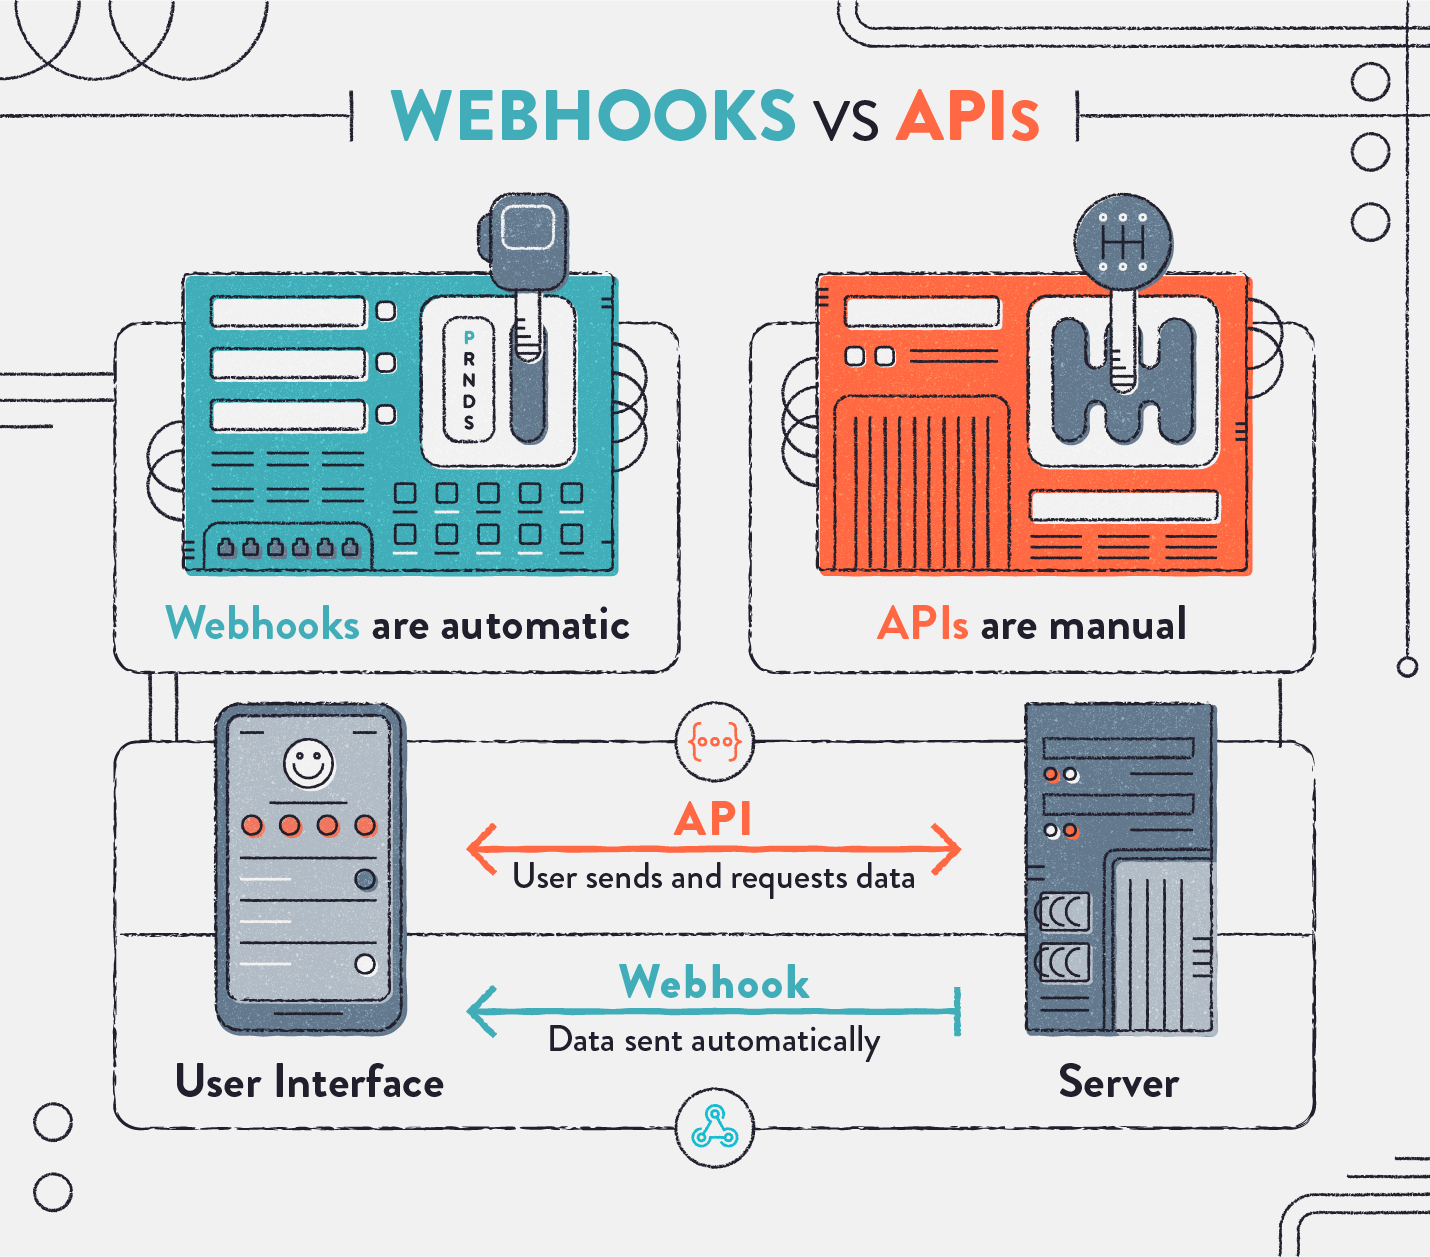 webhooks automated vs api manual data sharing